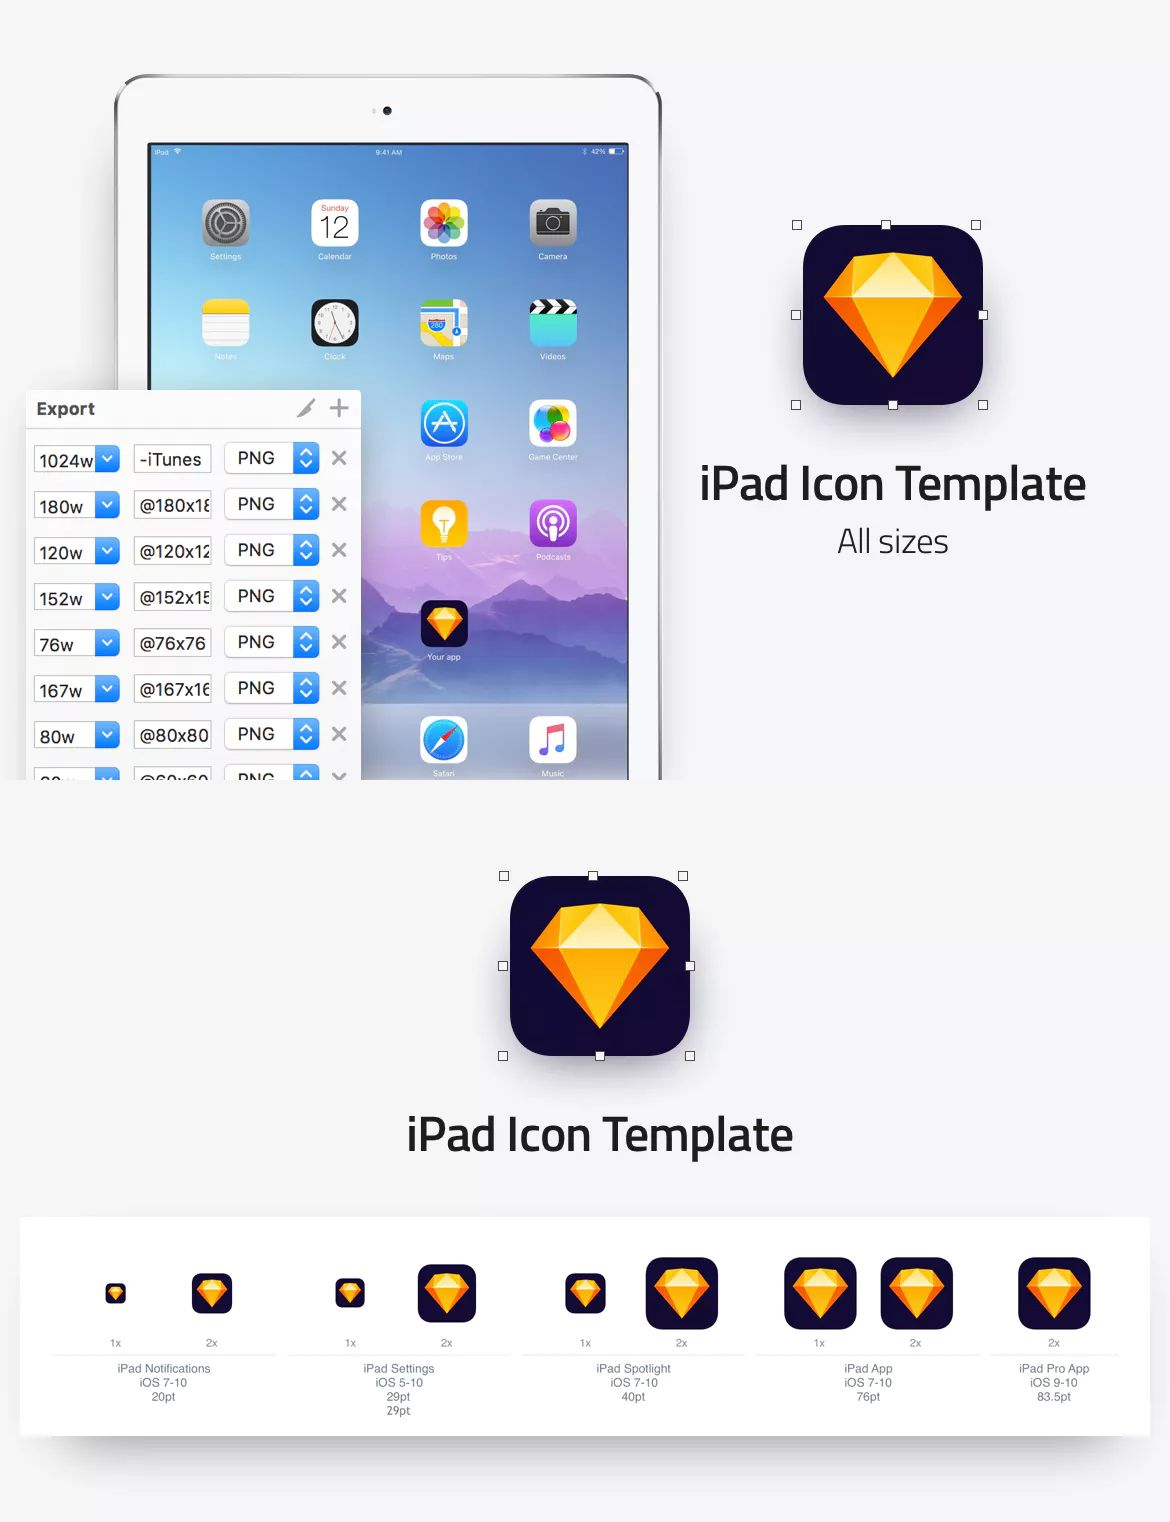 iPad icon template All sizes by nelson_14 on Ipad